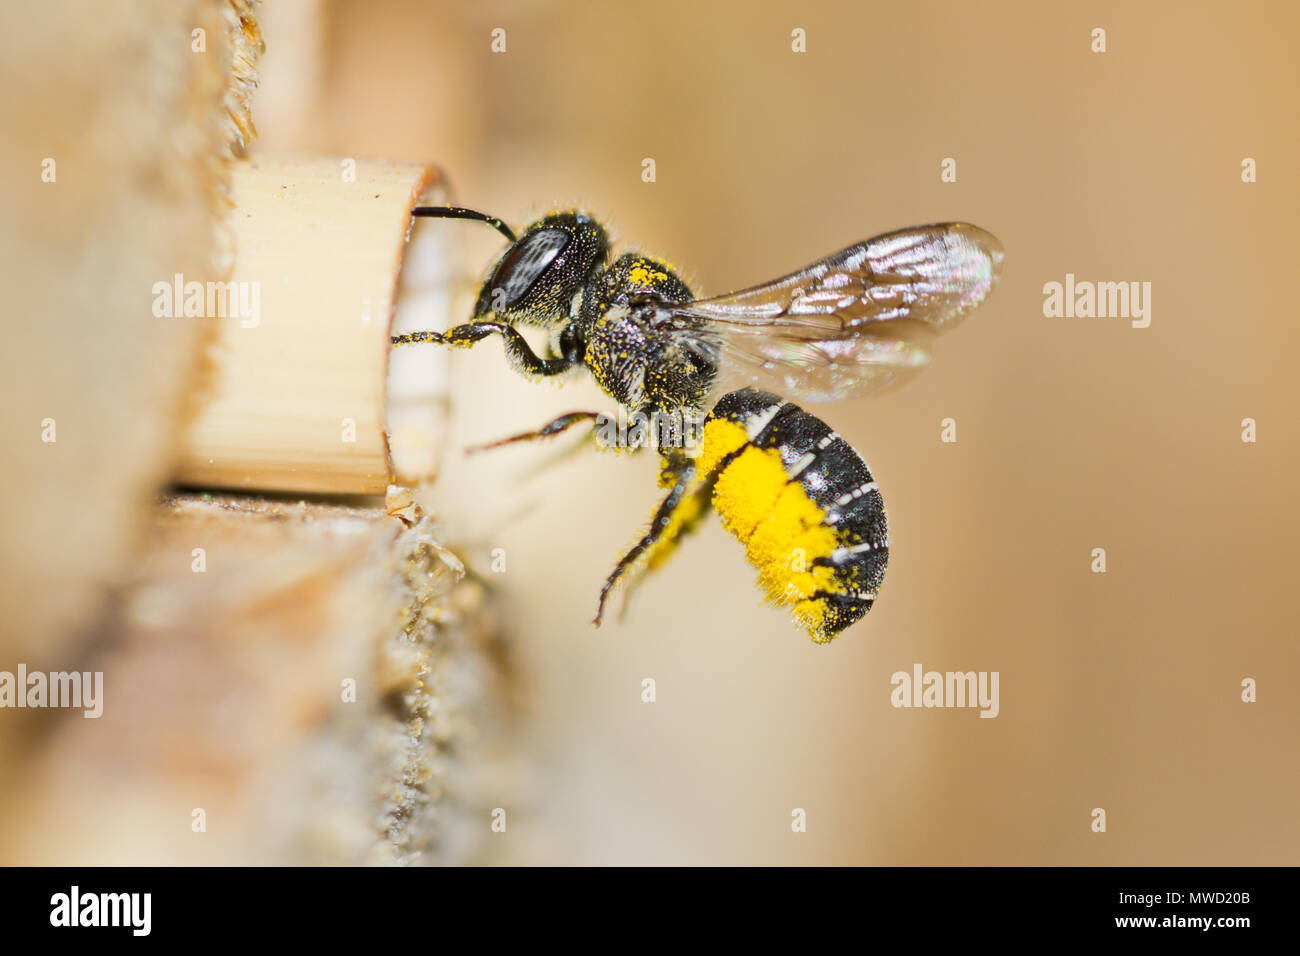 Female solitary resin bee (Heriades crenulatus) approaches an insect hotel to bring yellow pollen of aster flowers to its nest in a hollow reed stalk. - Stock Image